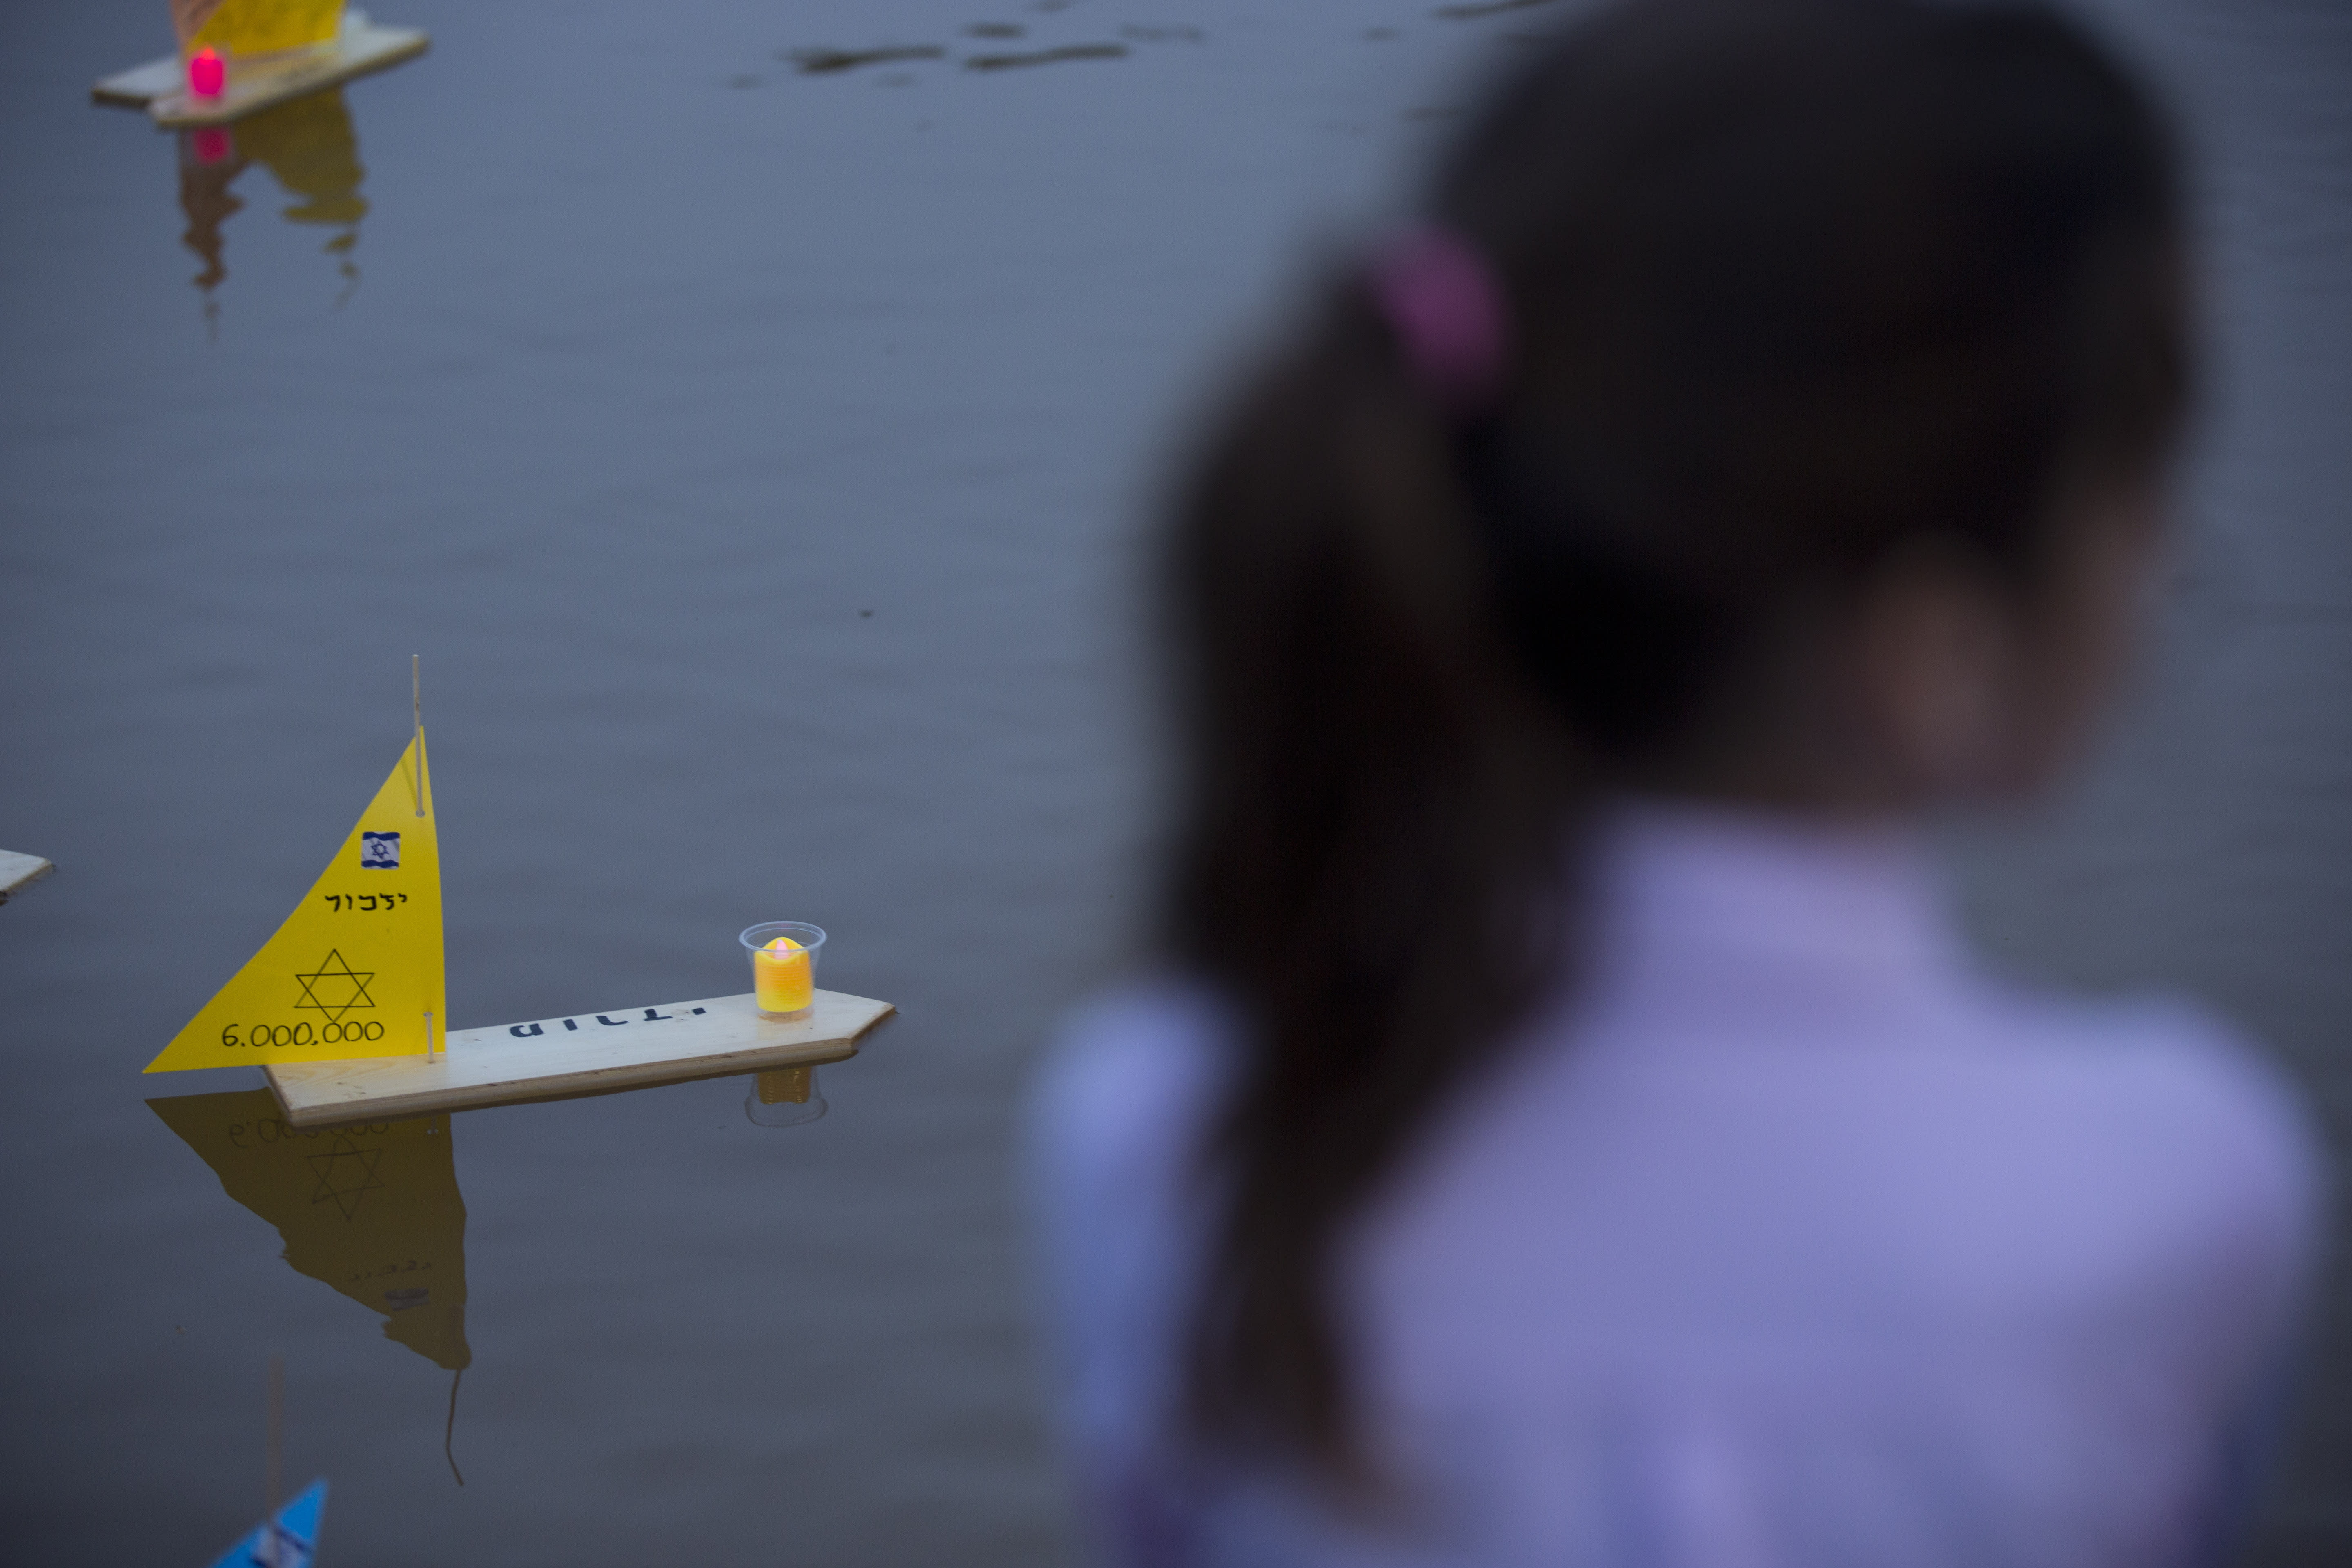 """Handmade boats with the names of Nazi concentration camps float in a lake during ceremony marking the annual Holocaust Remembrance Day in Tel Aviv, Israel, Wednesday, May 1, 2019. Israel marking the annual Day of Remembrance for the six million Jewish victims of the Nazi genocide who perished during World War II. Hebrew reads """"to remember"""". (AP Photo/Oded Balilty)"""